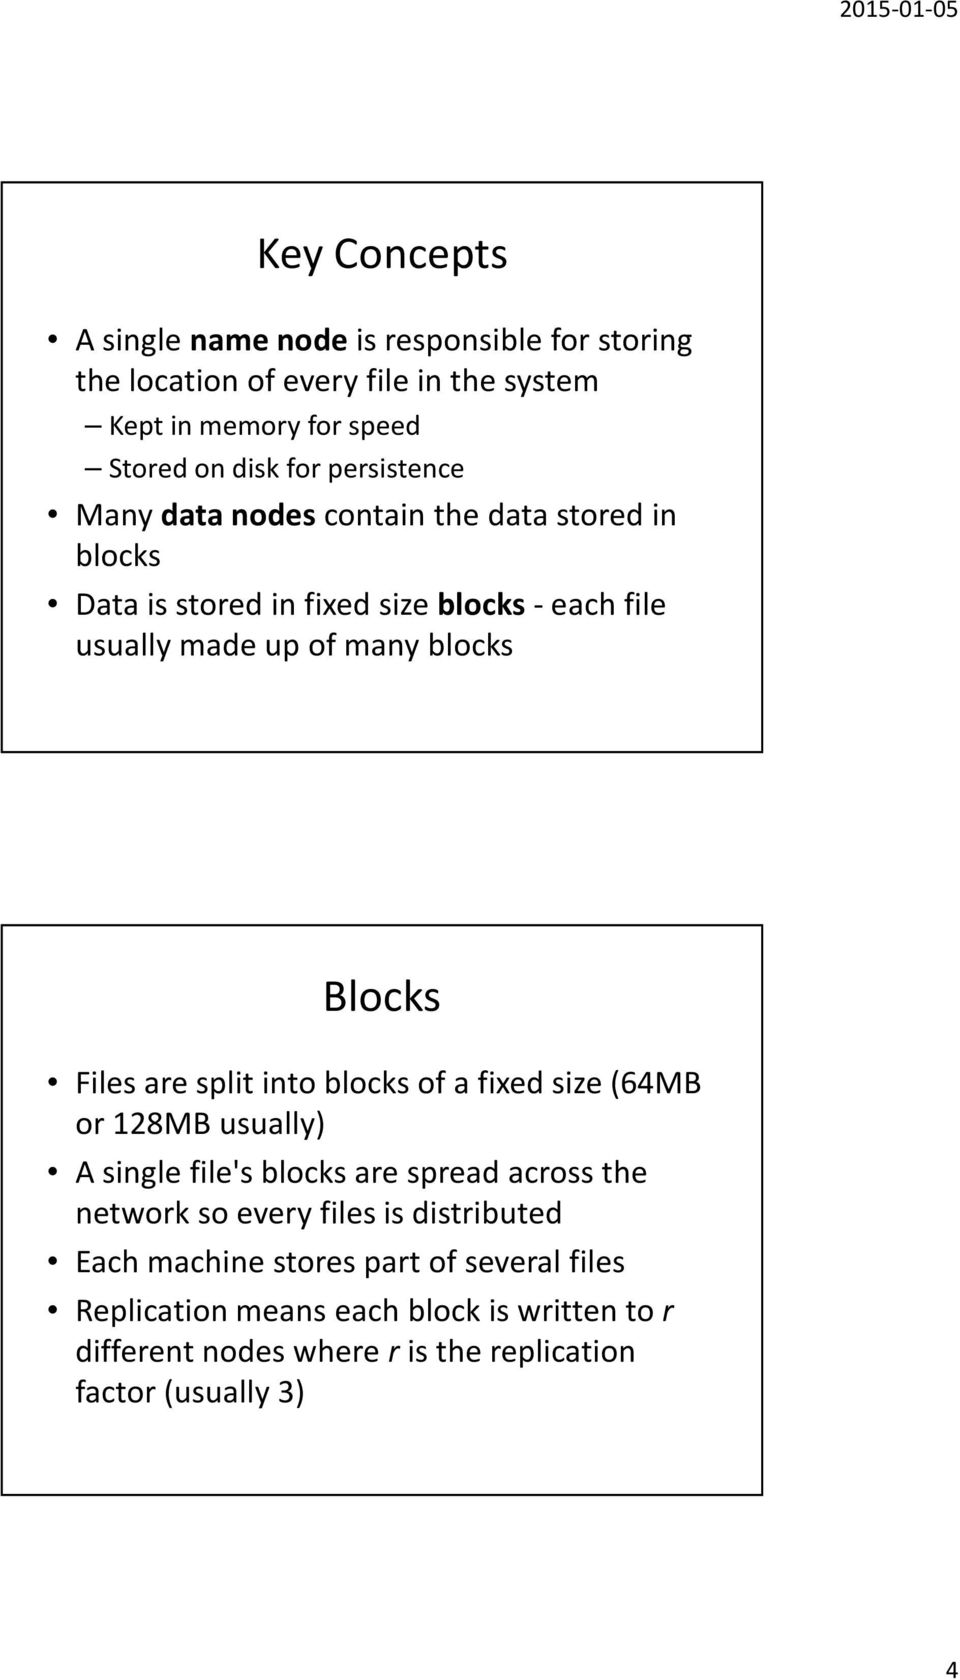 Files are split into blocks of a fixed size (64MB or 128MB usually) A single file's blocks are spread across the network so every files is